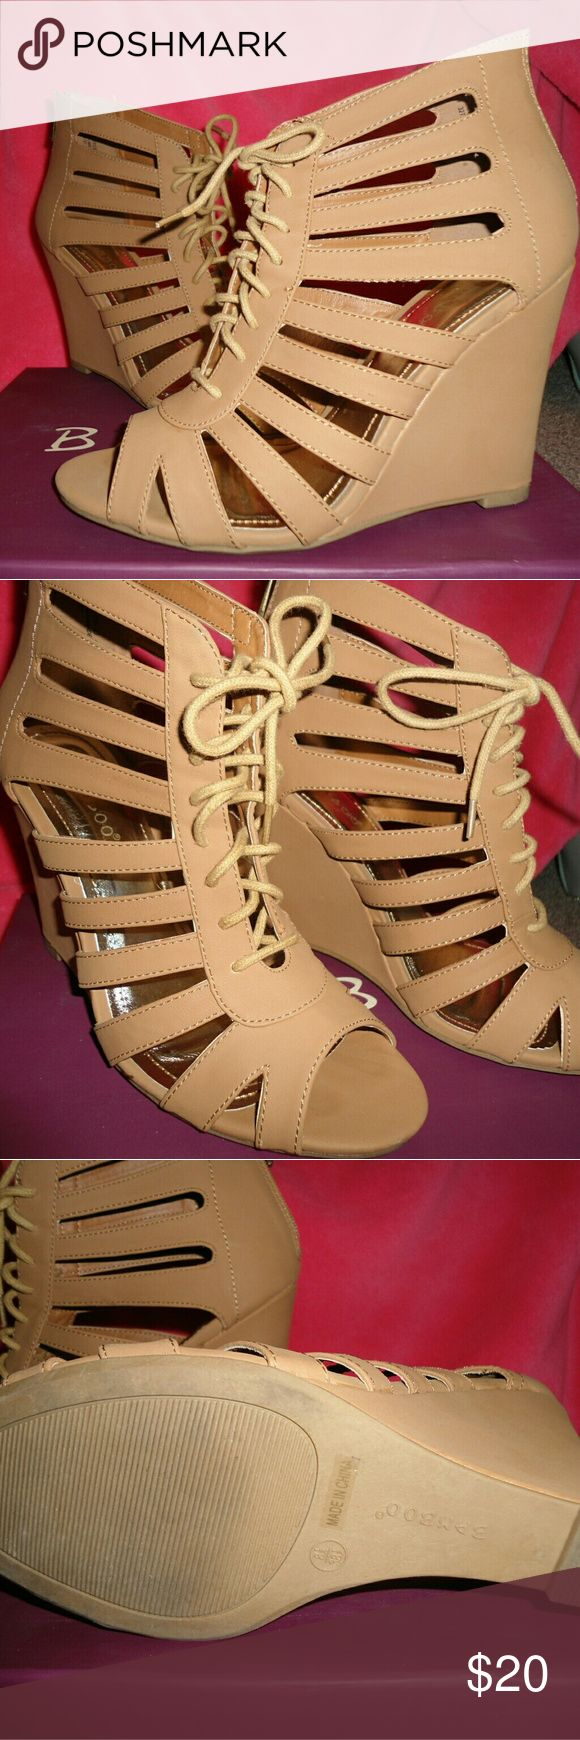 Lace-Up Wedges Cute Lace-Up Wedges in great condition. Only worn once. Still with box and original price ticket. These are adorable!!  Listing price or best Offer! :) Tilly's Shoes Wedges